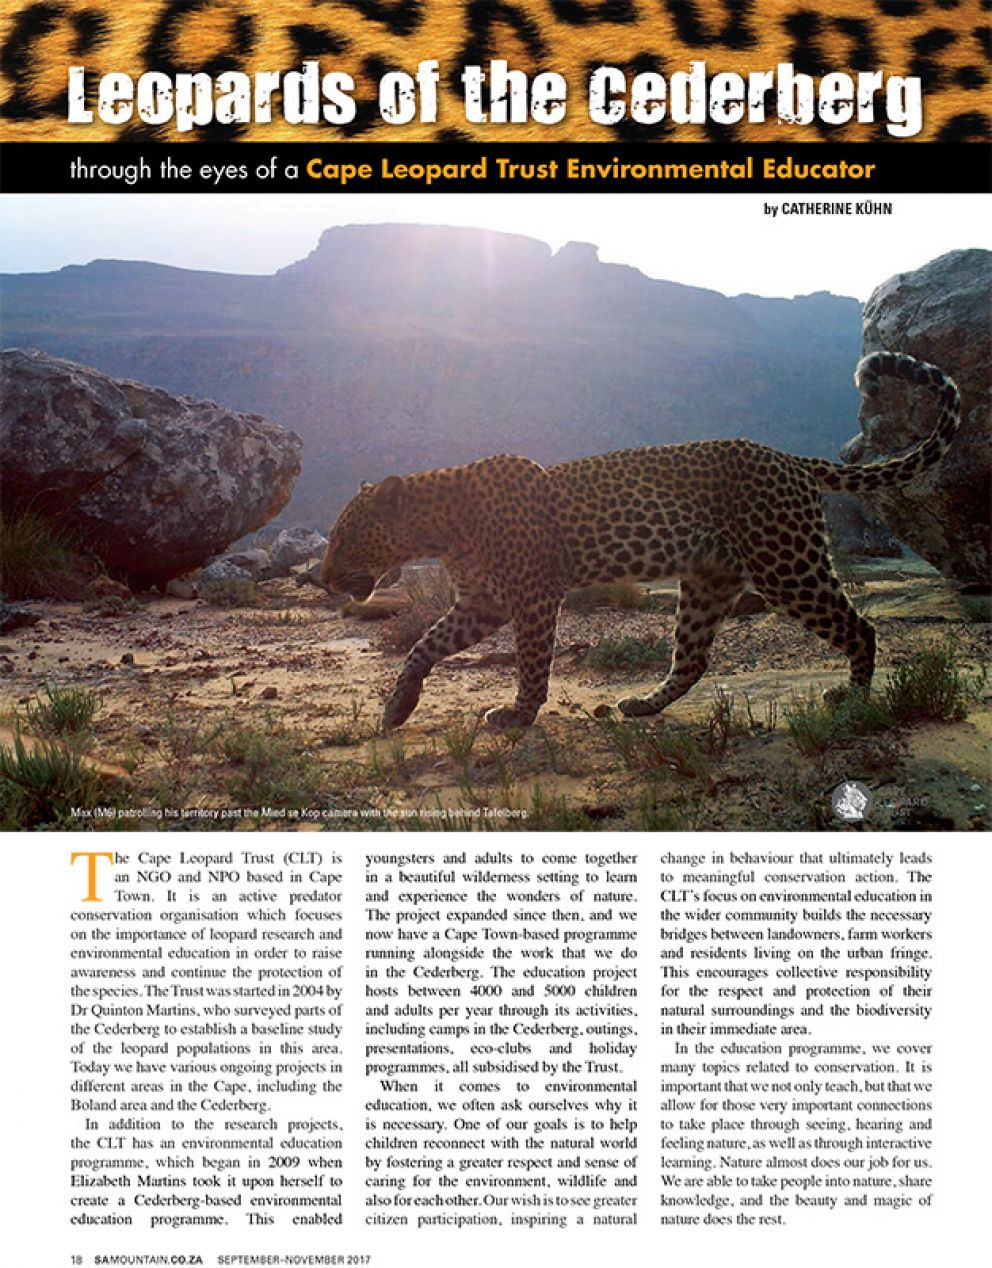 Leopards of the Cederberg through the eyes of a Cape Leopard Trust Environmental Educator